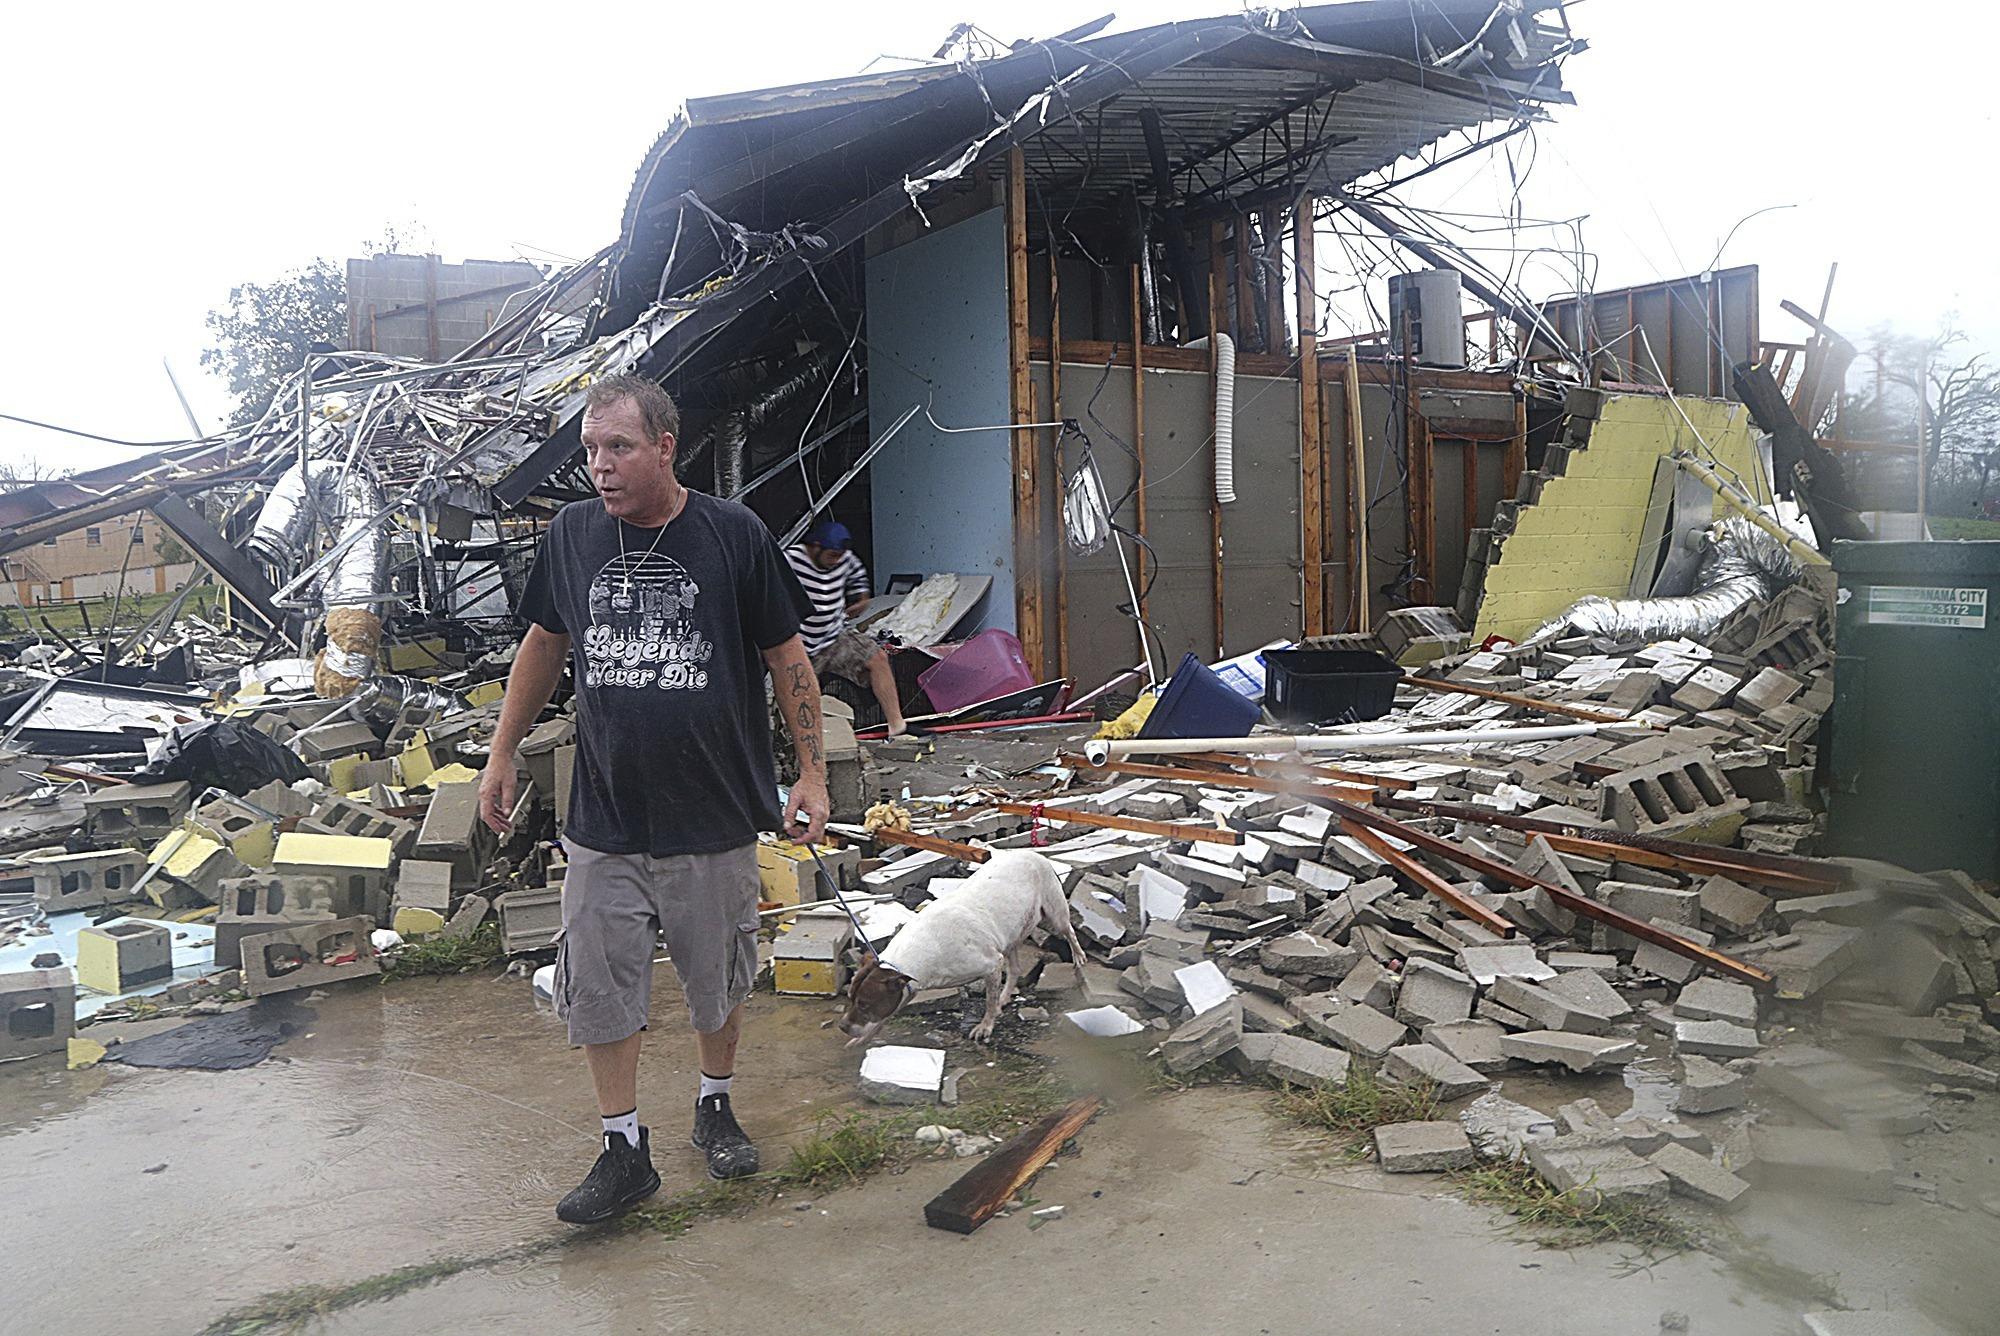 Brian Bon inspects damages in the Panama City downtown area after Hurricane Michael made landfall in Panama City, Fla., Wednesday, Oct. 10, 2018. Supercharged by abnormally warm waters in the Gulf of Mexico, Hurricane Michael slammed into the Florida Panhandle with terrifying winds of 155 mph Wednesday, splintering homes and submerging neighborhoods before continuing its march inland. (Pedro Portal/Miami Herald via AP)